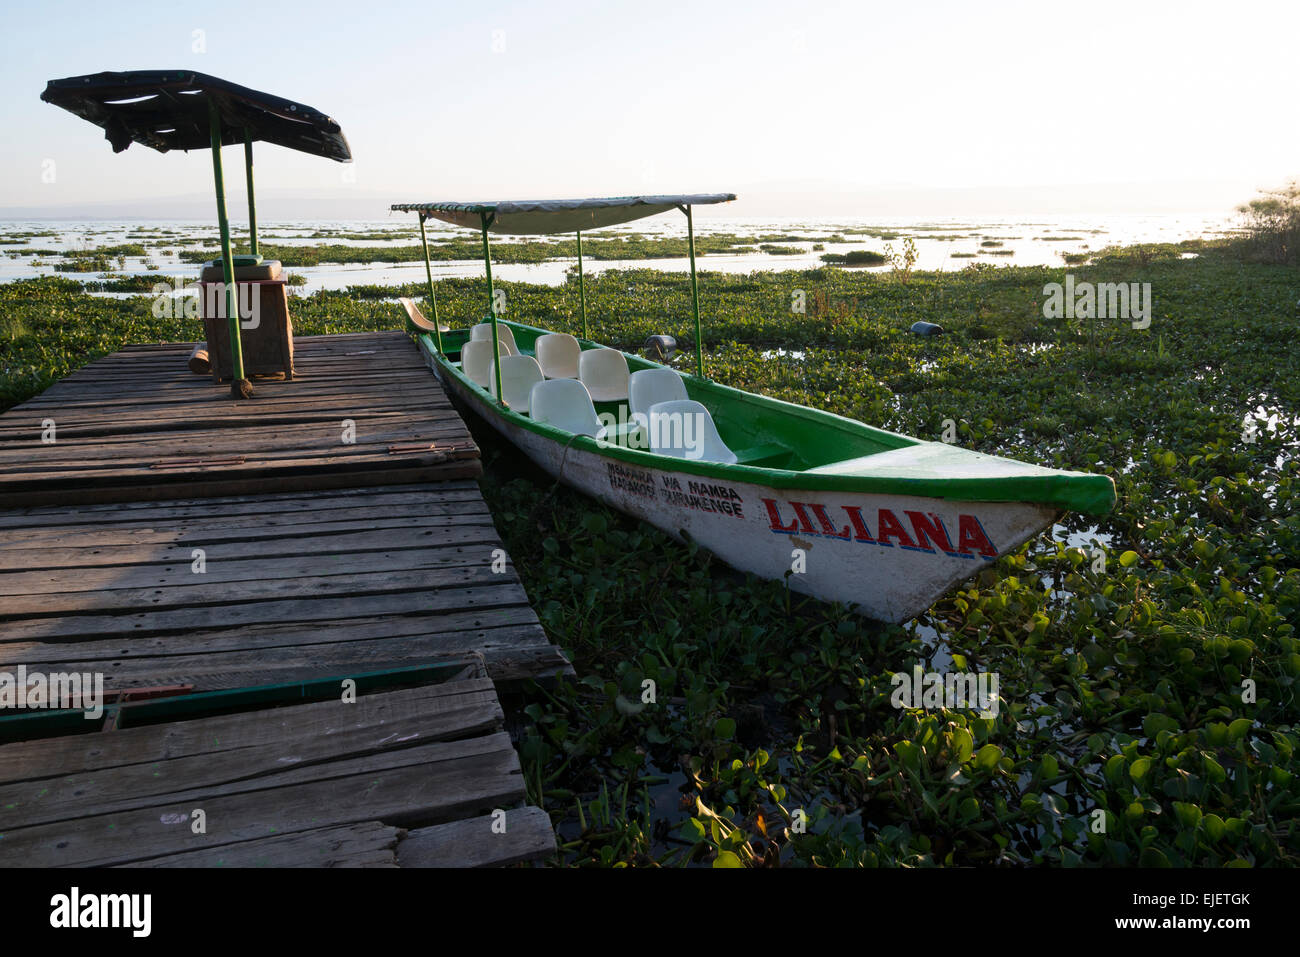 Lake Naivasha. Rift valley. Kenya. Stock Photo